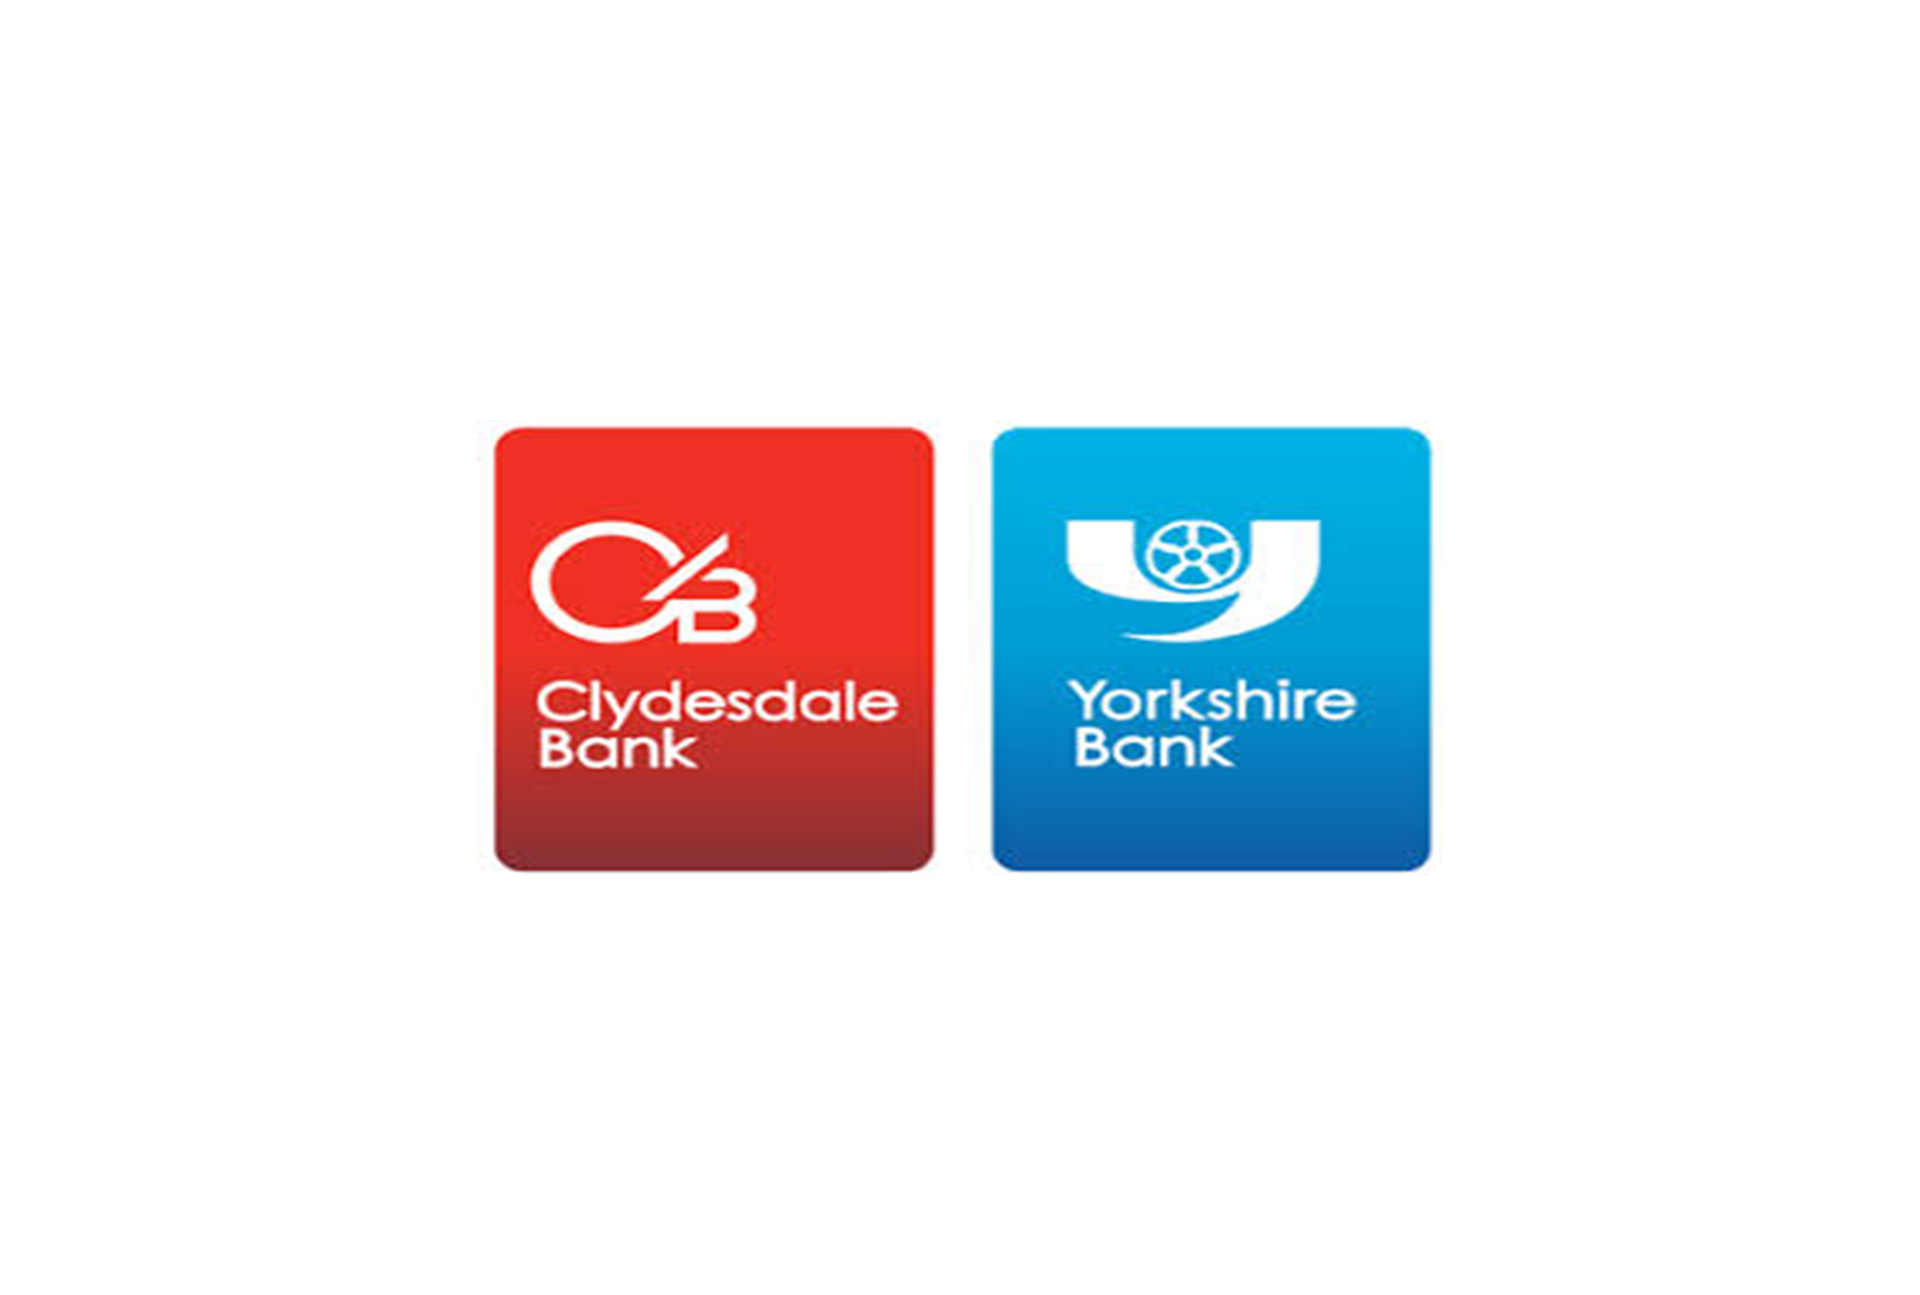 Clydesdale and Yorkshire Bank